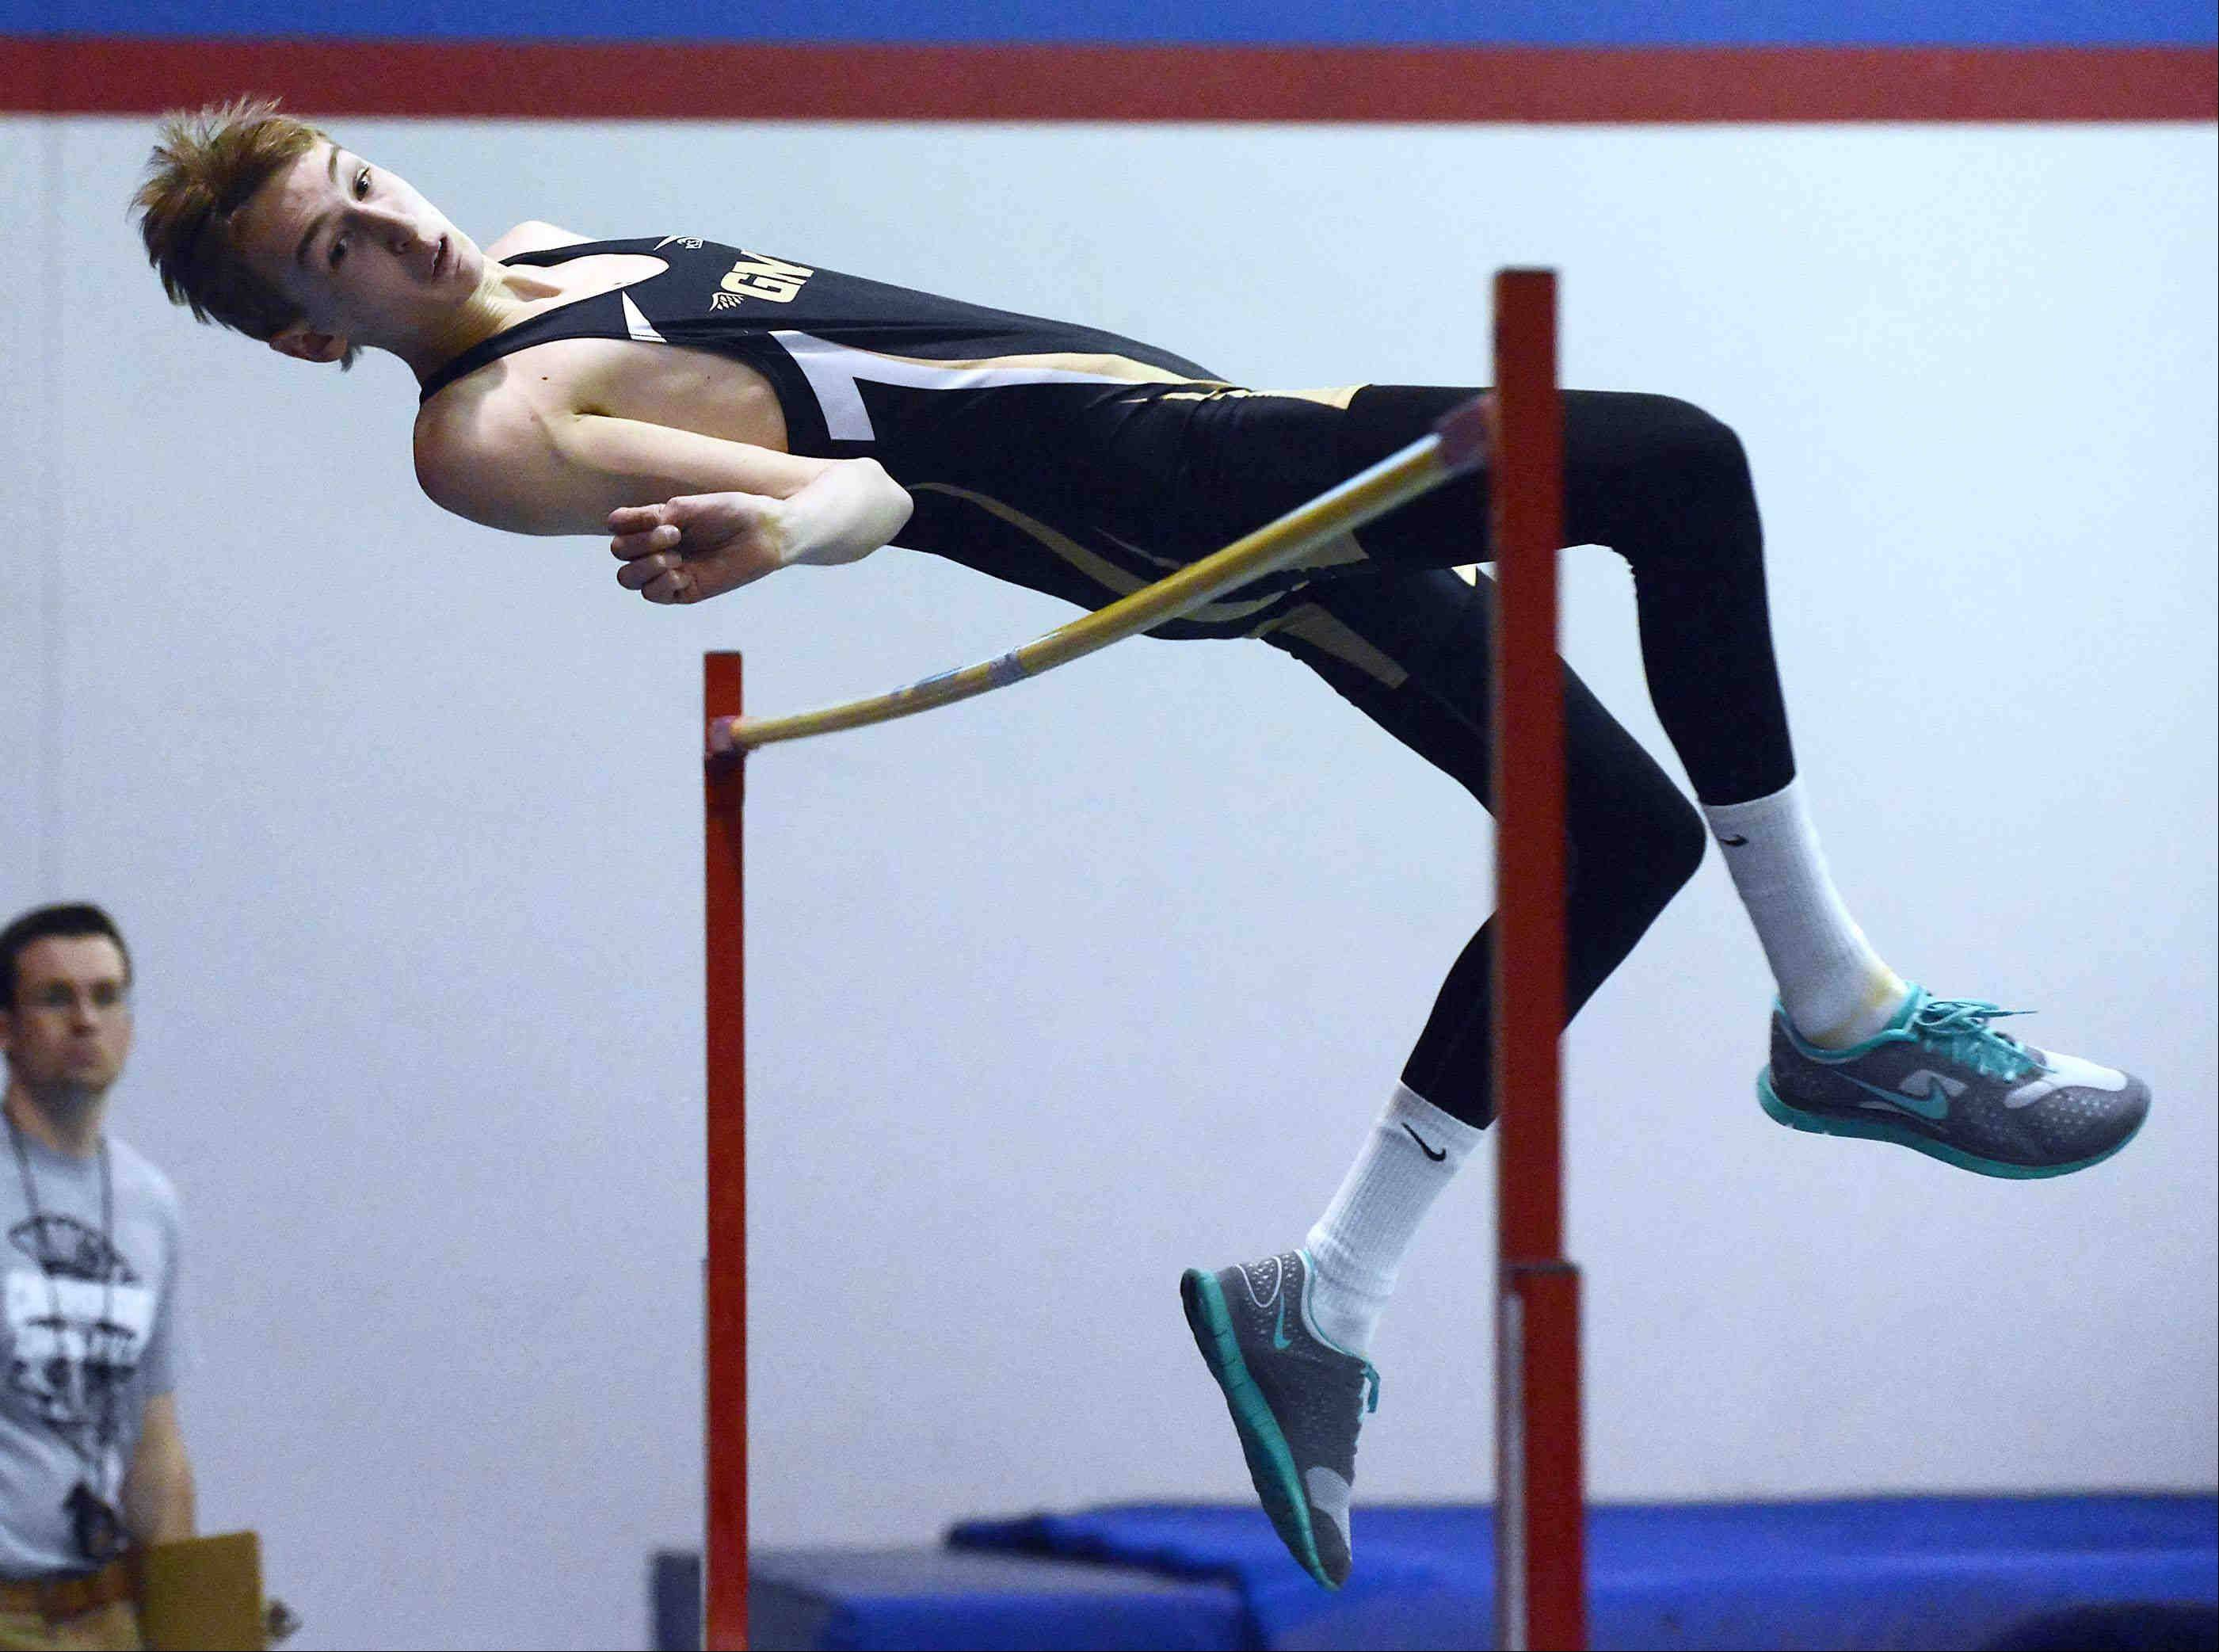 Grayslake North's Dylan Toole wins the high jump and sets a school record at 6 feet, 4 inches Wednesday at the Fox Valley Conference indoor meet at Dundee-Crown.